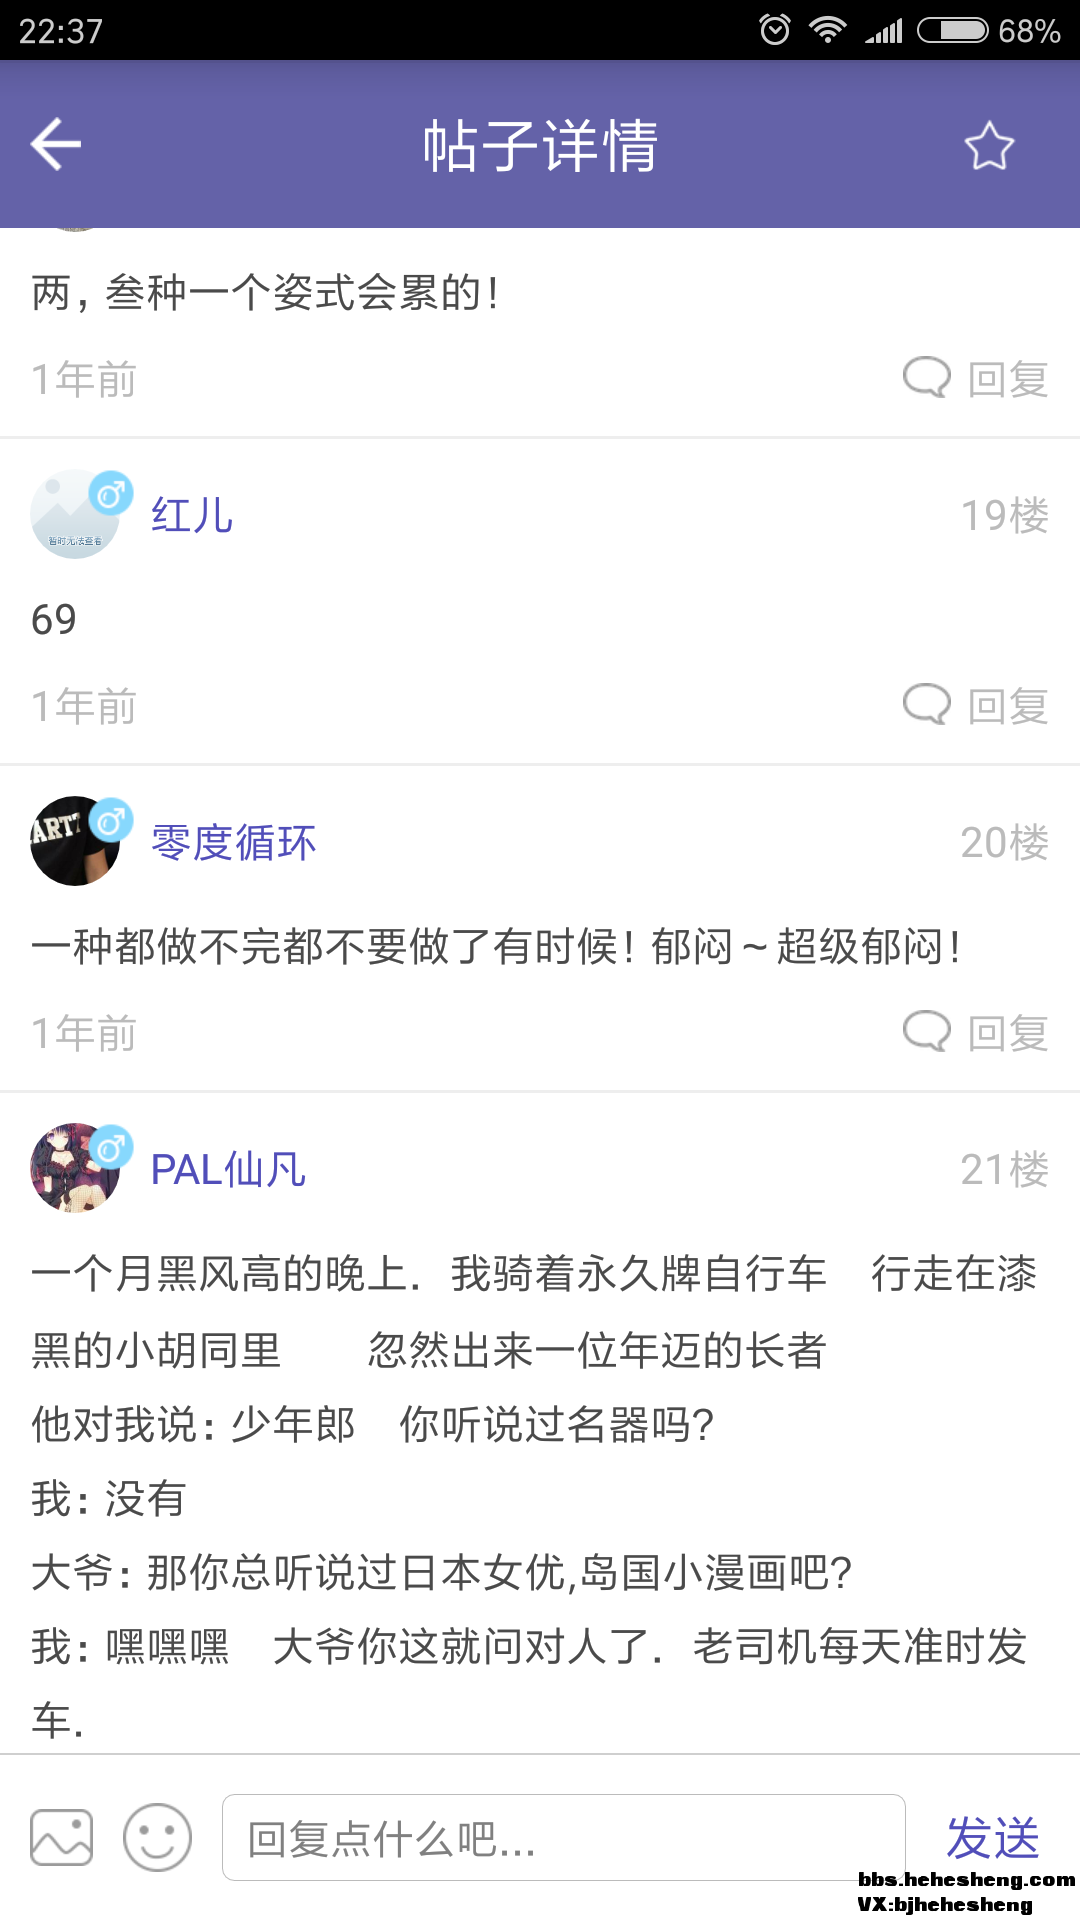 Screenshot_2018-01-19-22-37-49-565_com.mengxia.lo.png